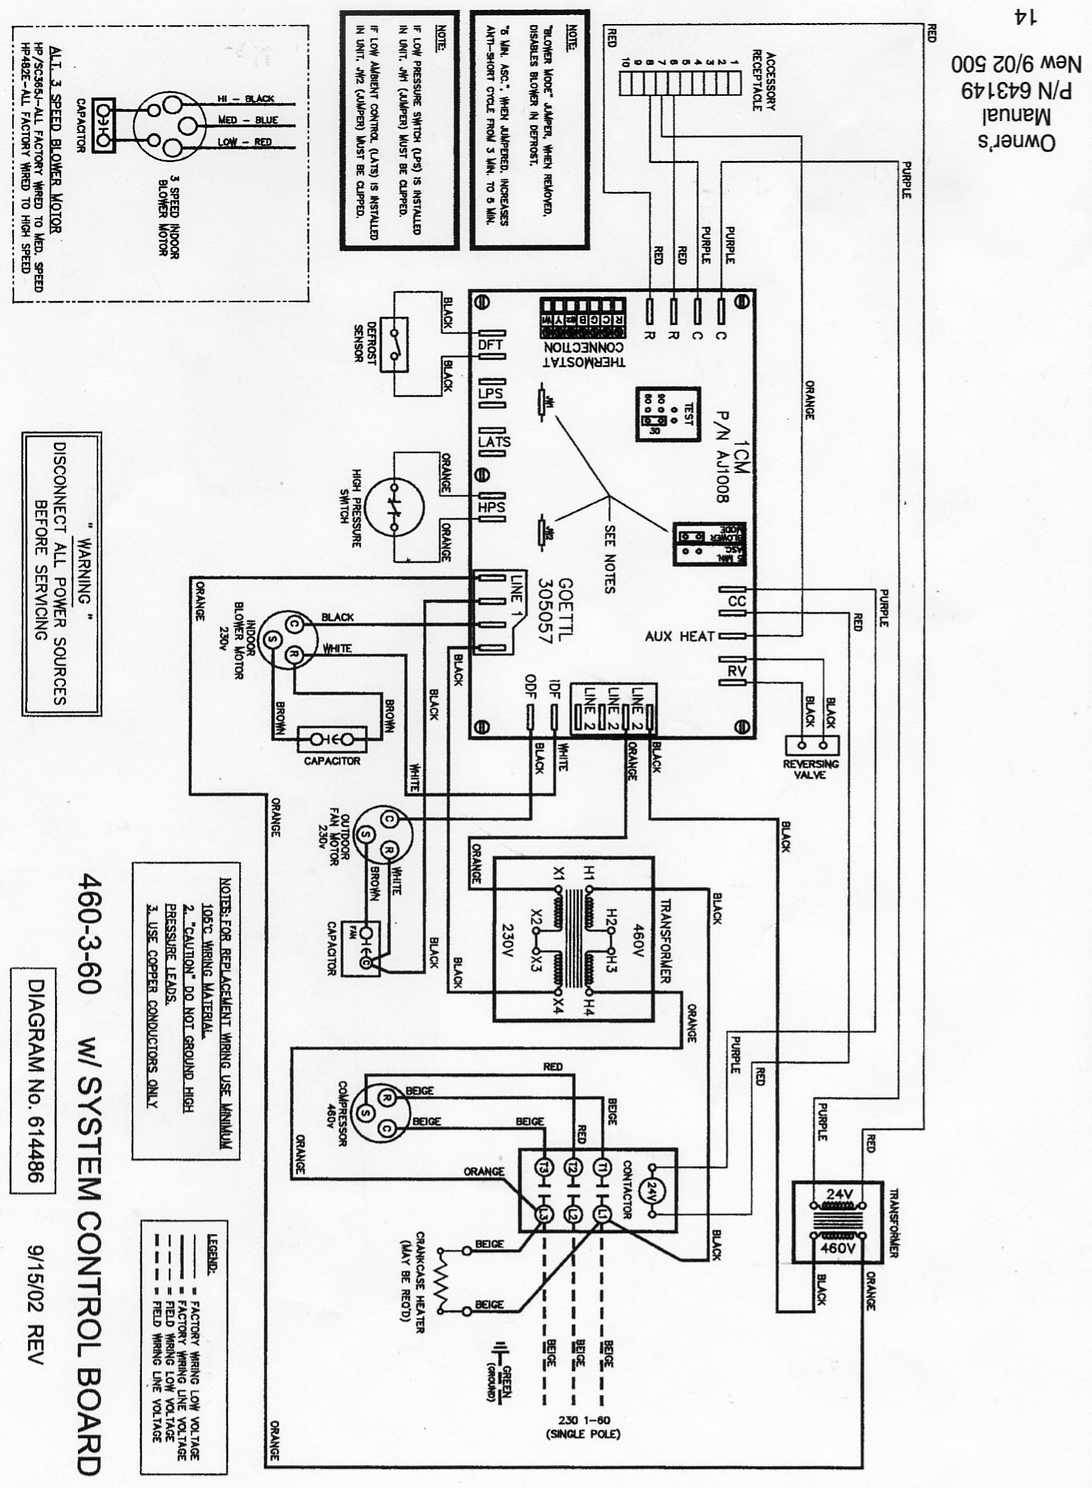 Janitrol Heat Pump Wiring Diagram - Wiring Diagrams Hubs - Goodman Package Unit Wiring Diagram